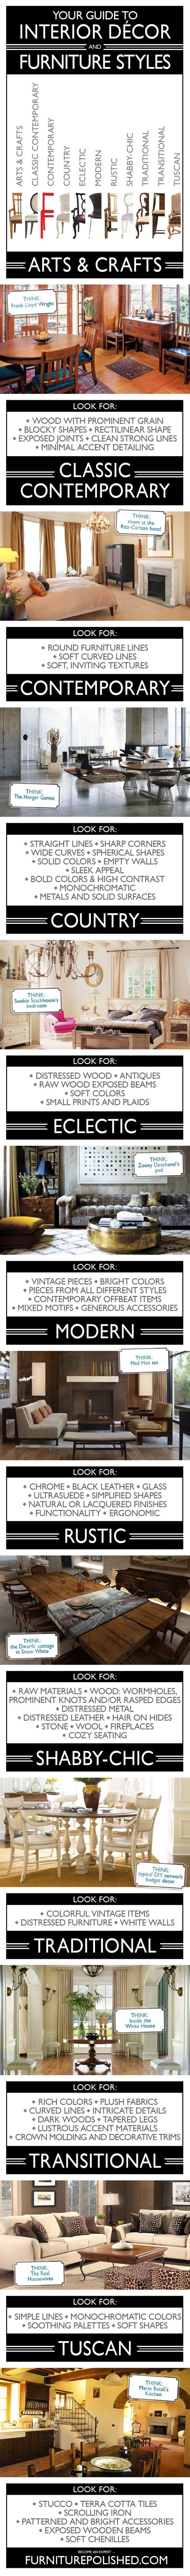 Guide to interior decor